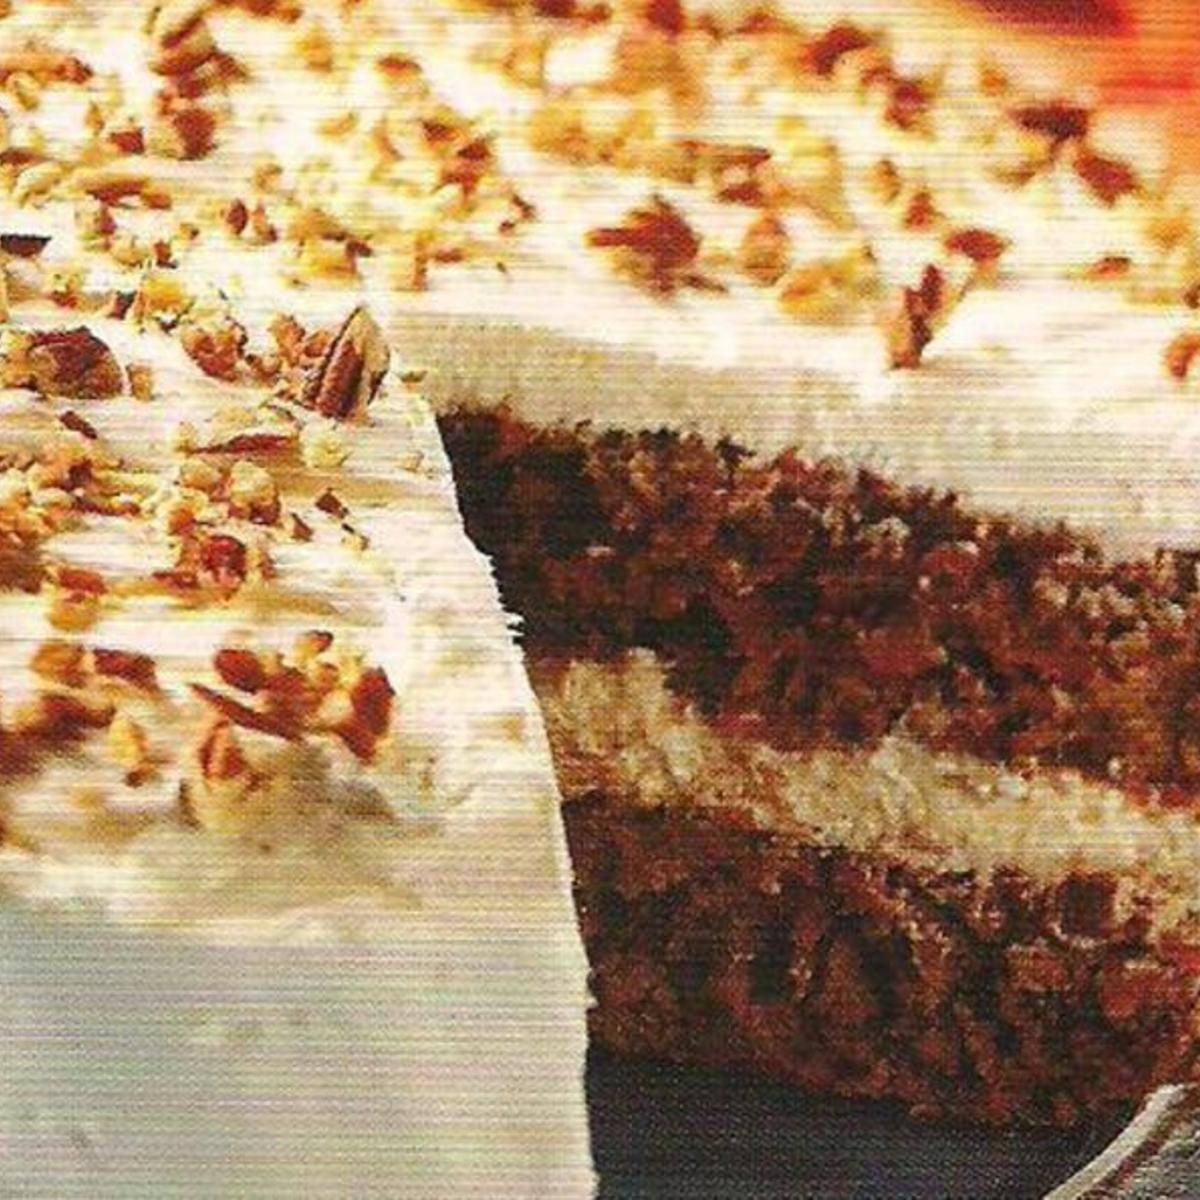 Boxed Carrot Cake Recipes Crushed Pineapple